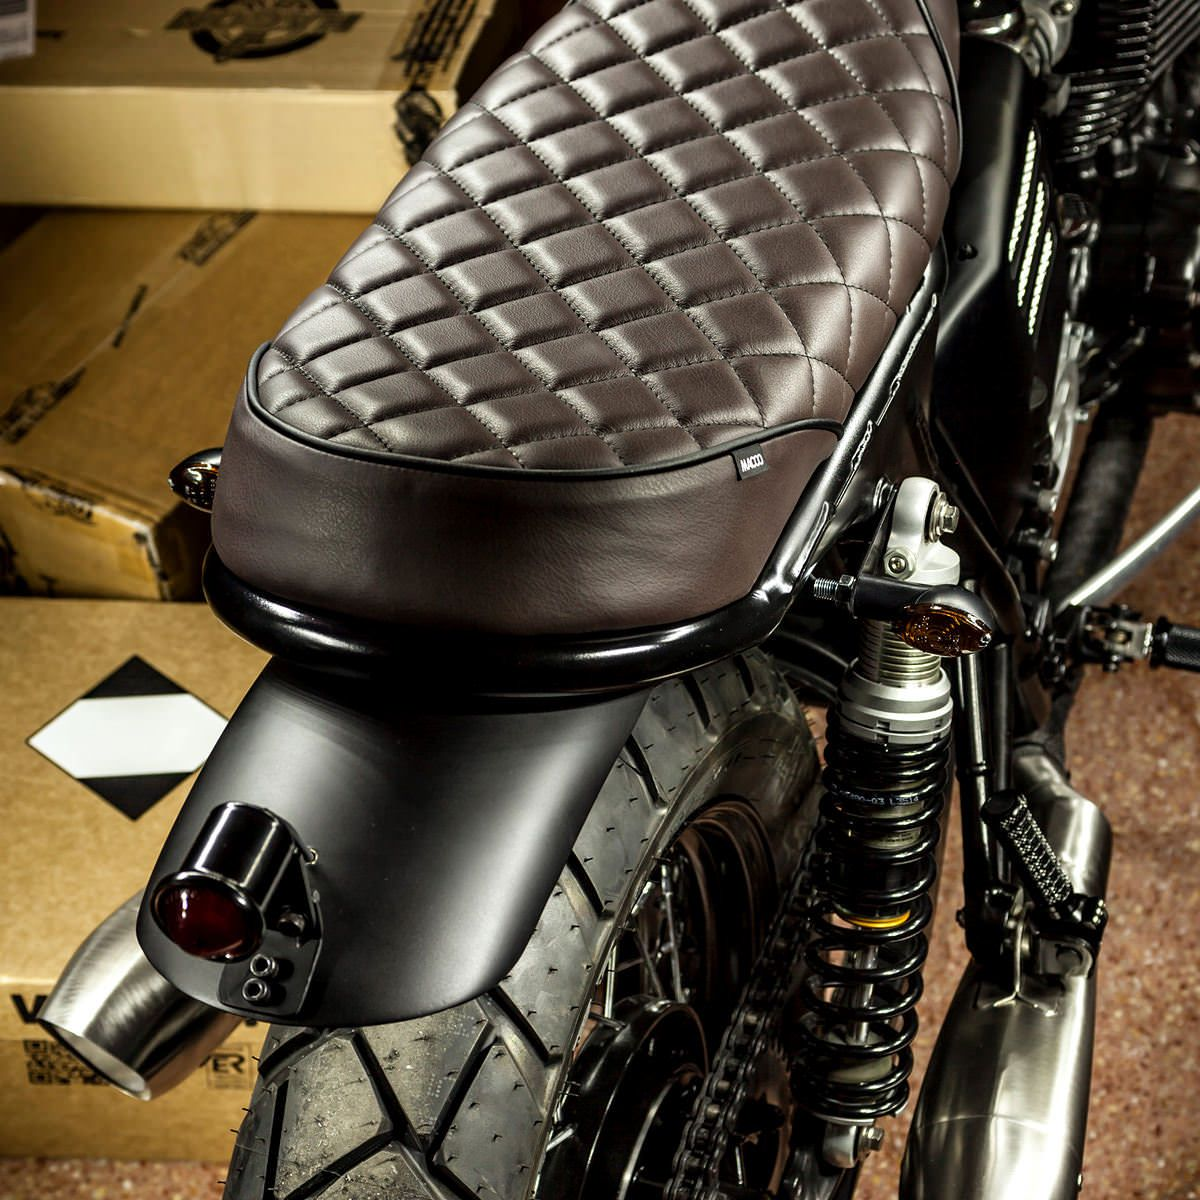 The Maltese Falcon A Triumph Bonneville Cafe Racer With Ducati Forks By Macco Motors